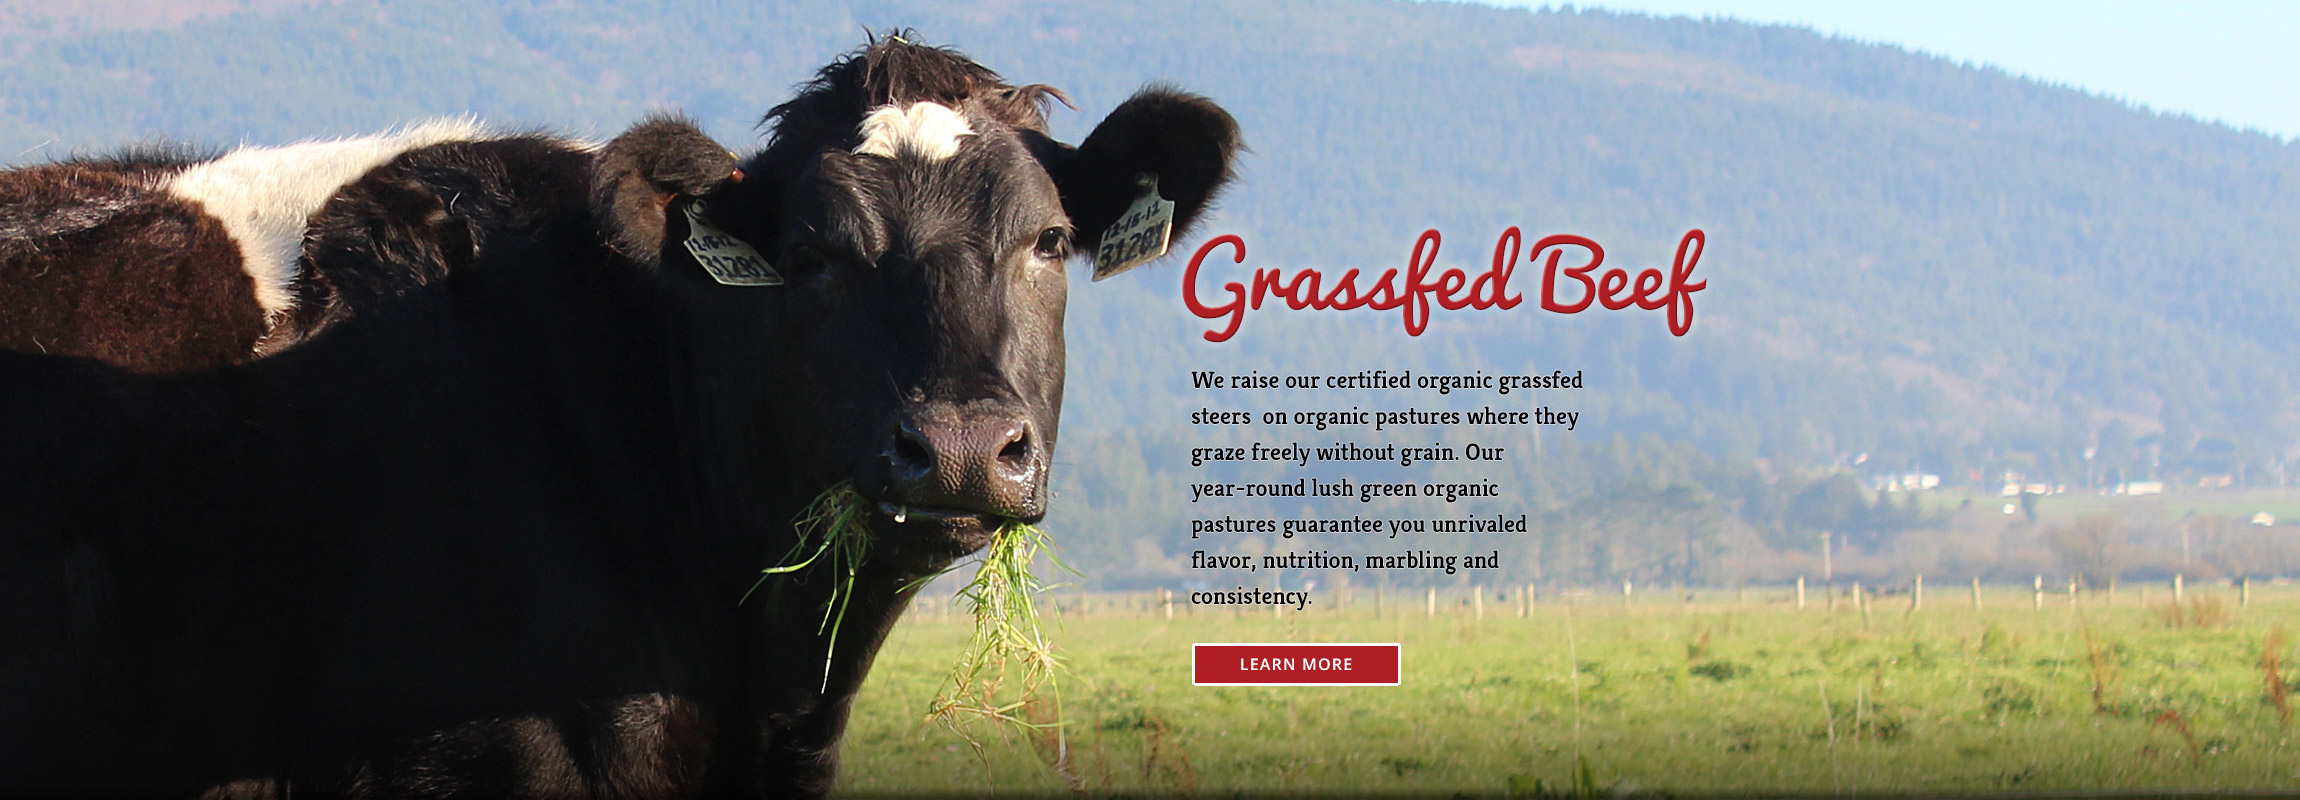 Alexandre EcoDairy Farms grassfed beef website header - Graphic Regime